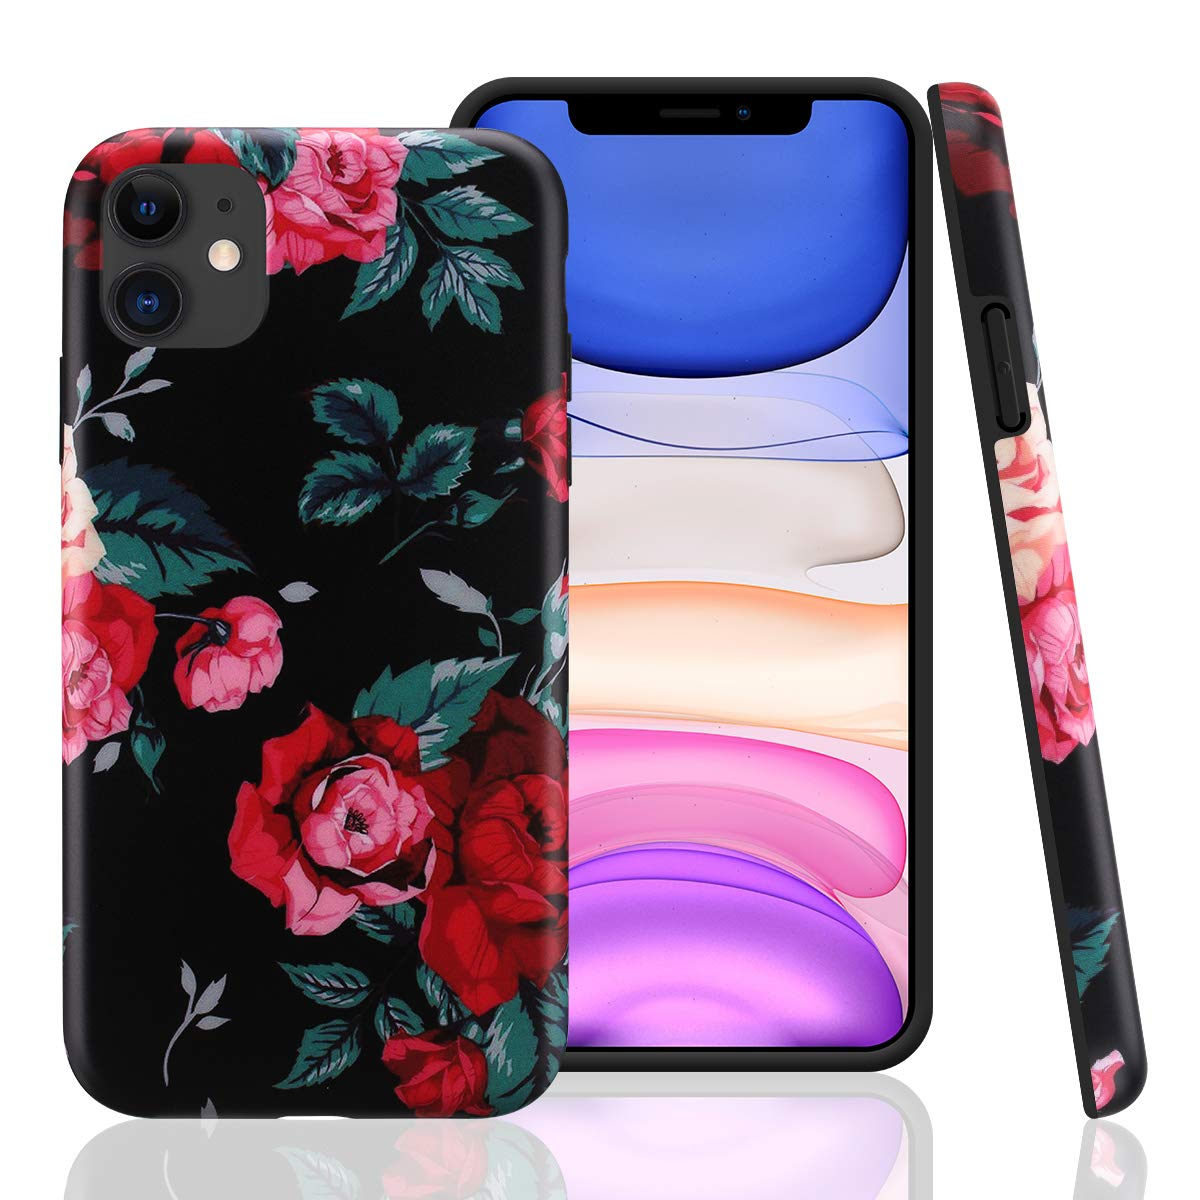 GOLINK Case for iPhone 11,Floral Series Slim-Fit Ultra-Thin Anti-Scratch Shock Proof Dust Proof Anti-Finger Print TPU Gel Case for iPhone XI 6.1 inch(2019 Release)-Red Rose